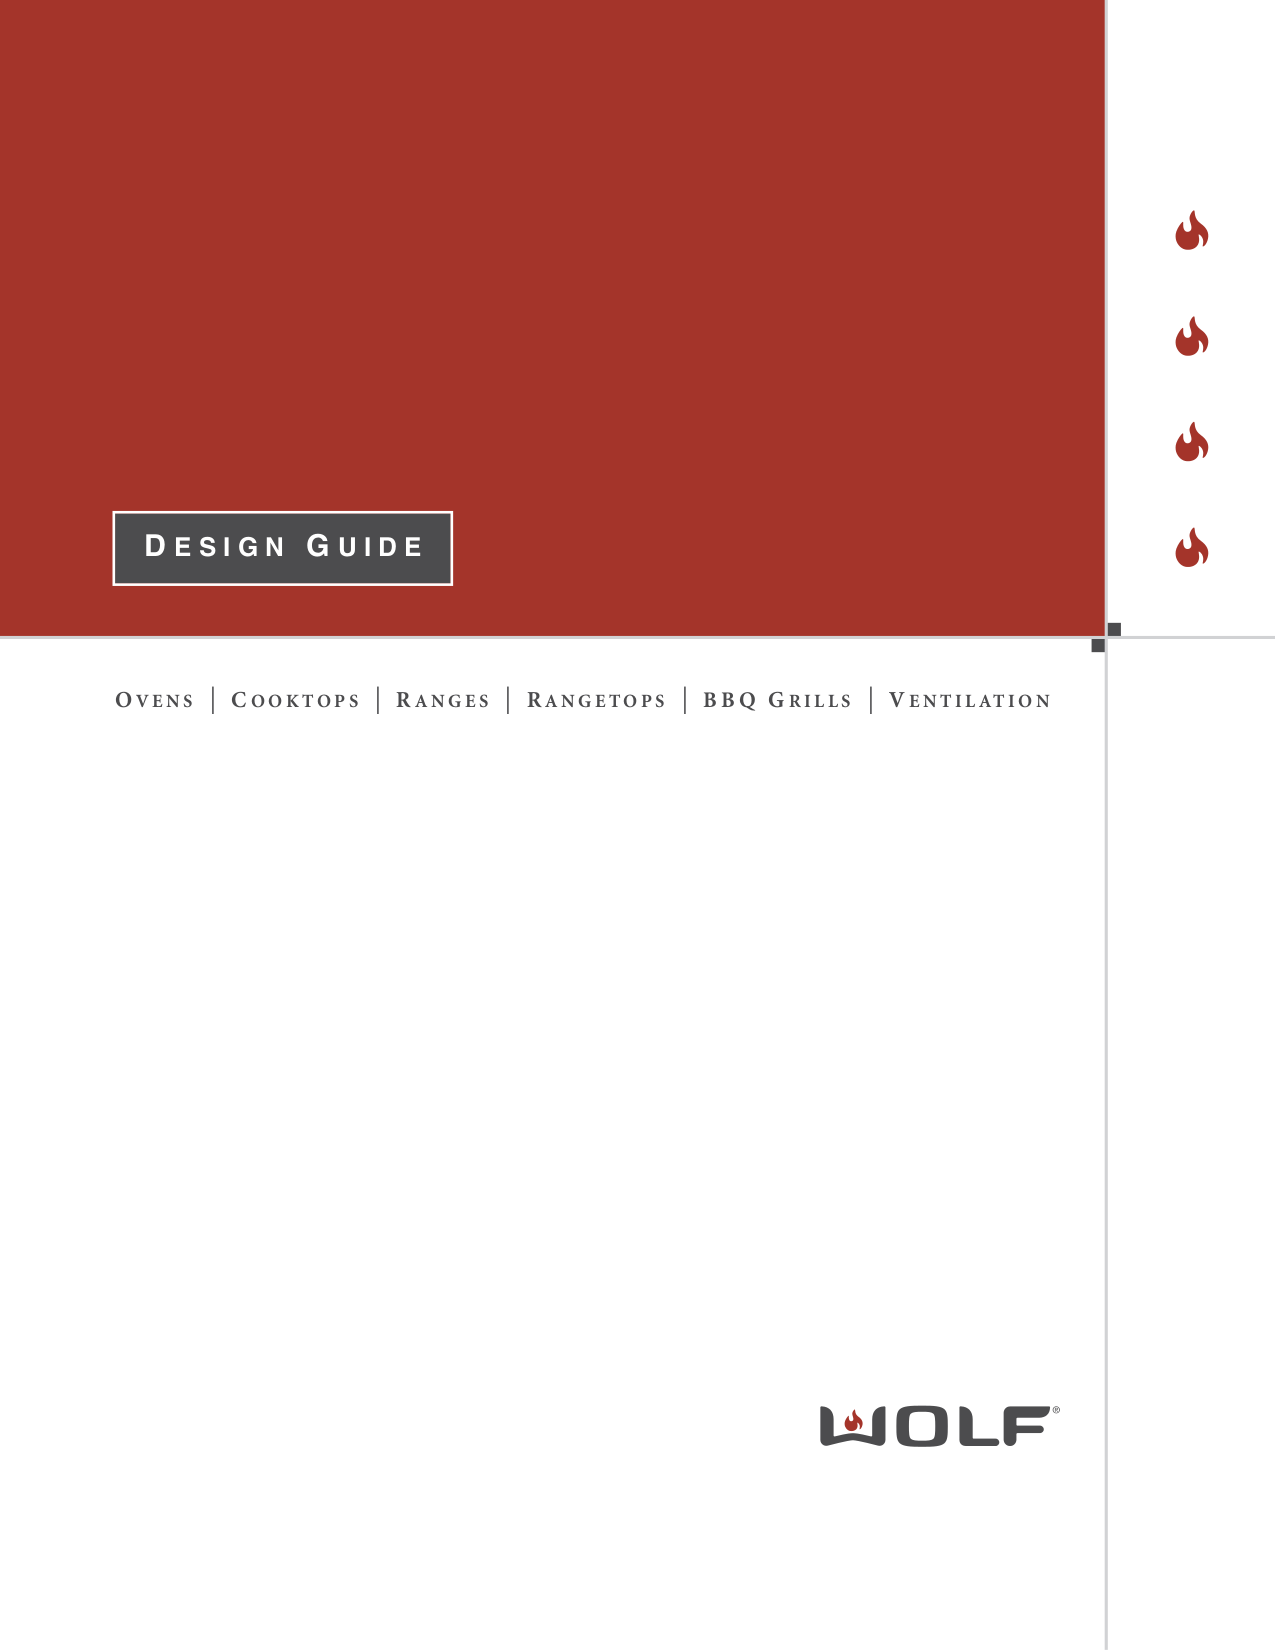 pdf for Wolf Grill BBQ242C manual